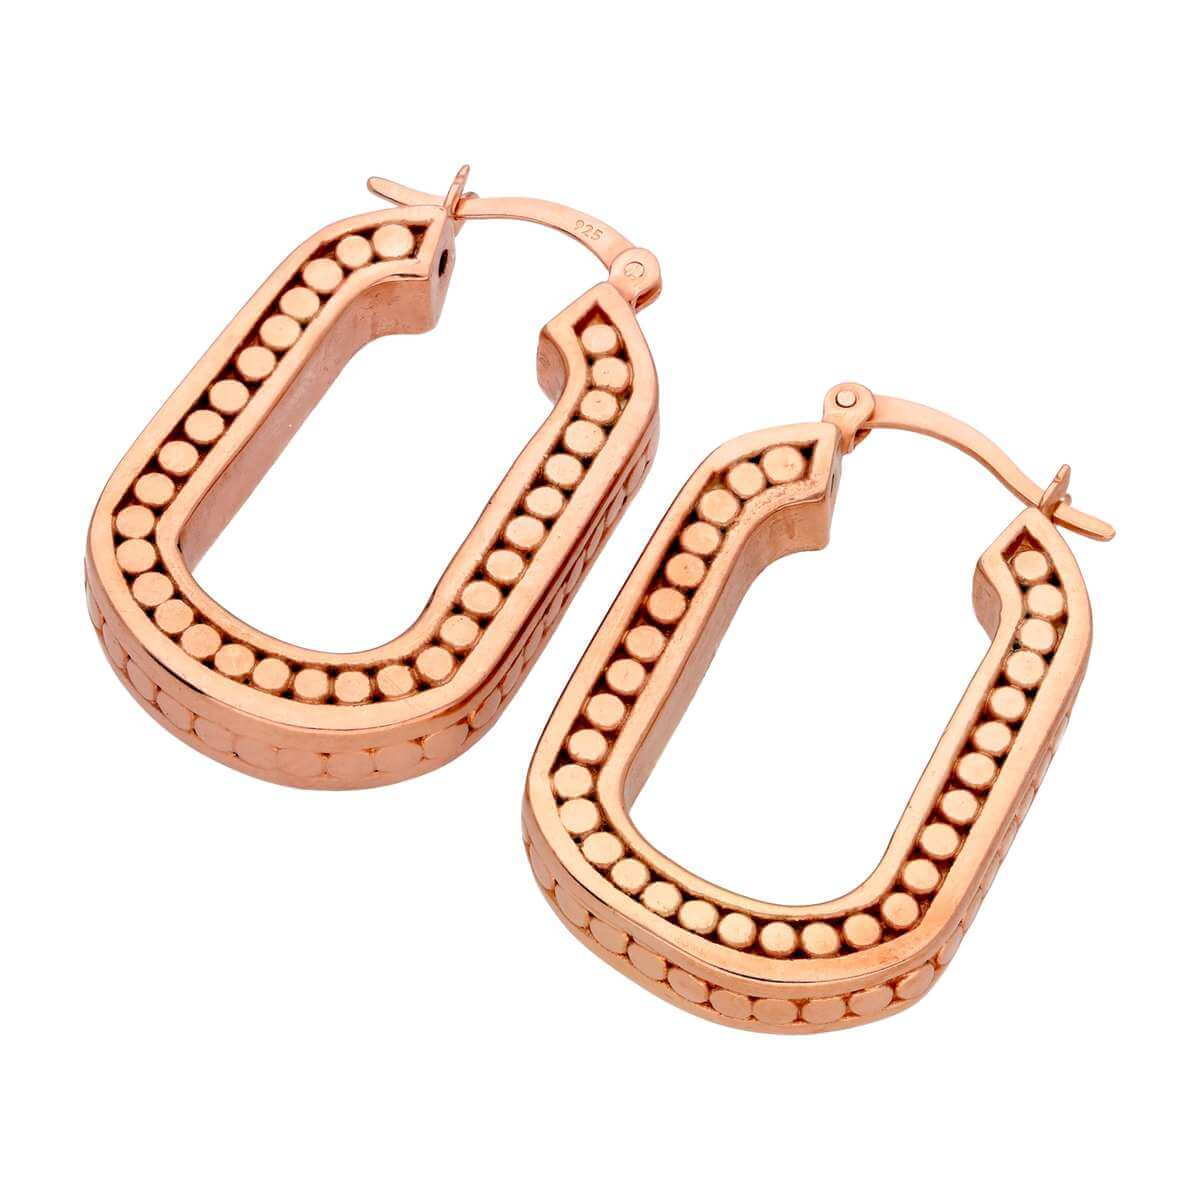 Rose Gold Plated Sterling Silver Beaded Ovate Hoop Earrings